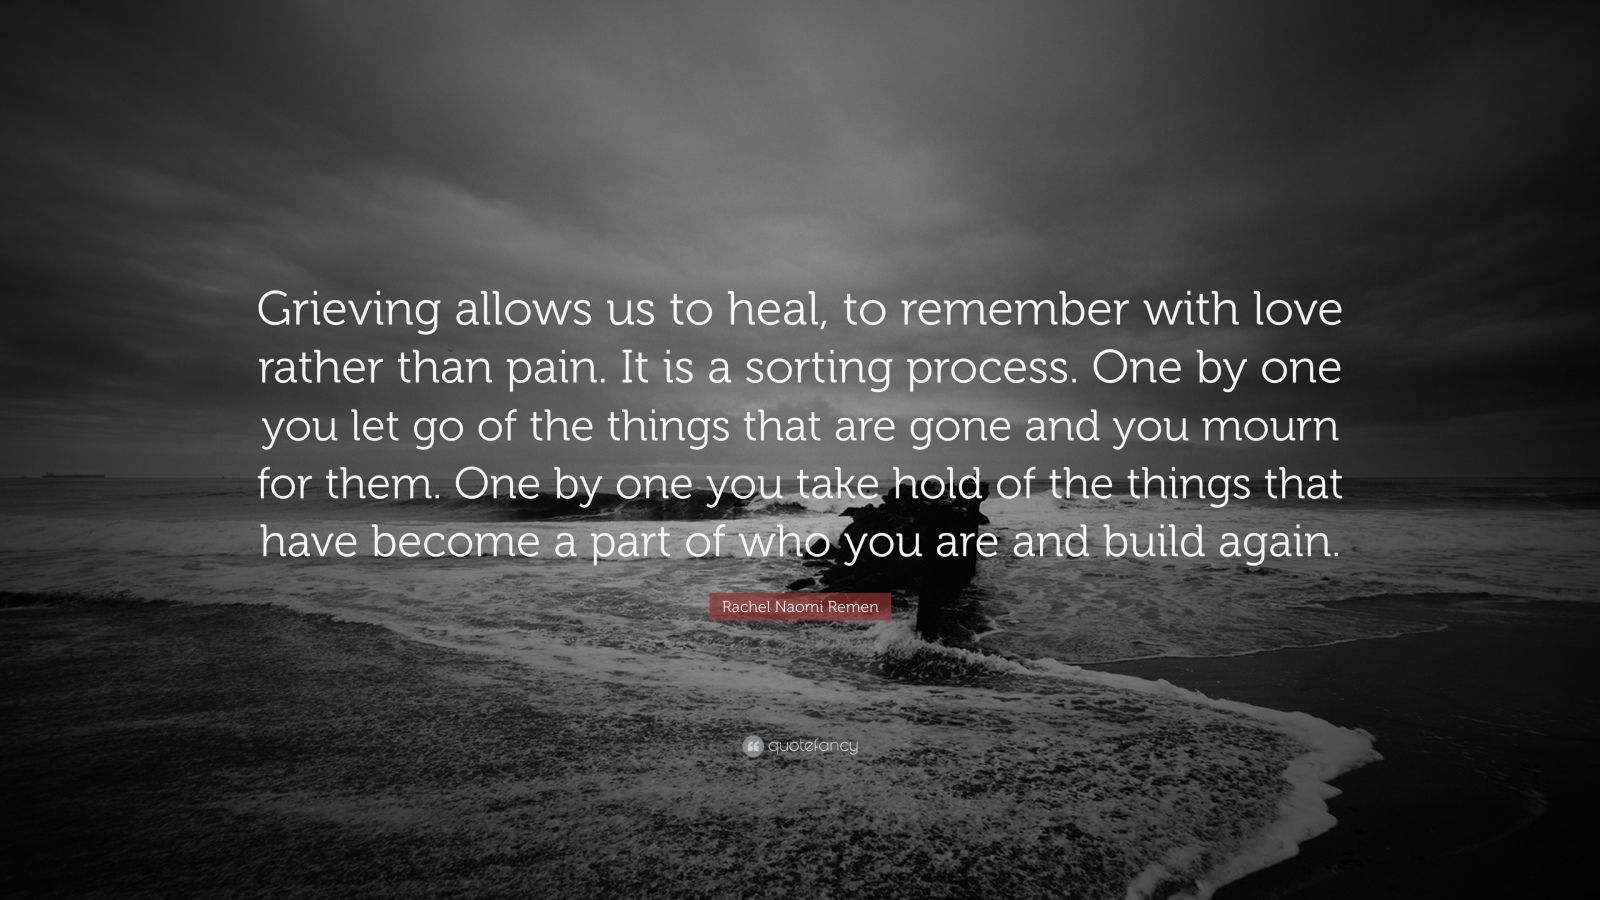 Road Quote Wallpaper Rachel Naomi Remen Quote Grieving Allows Us To Heal To